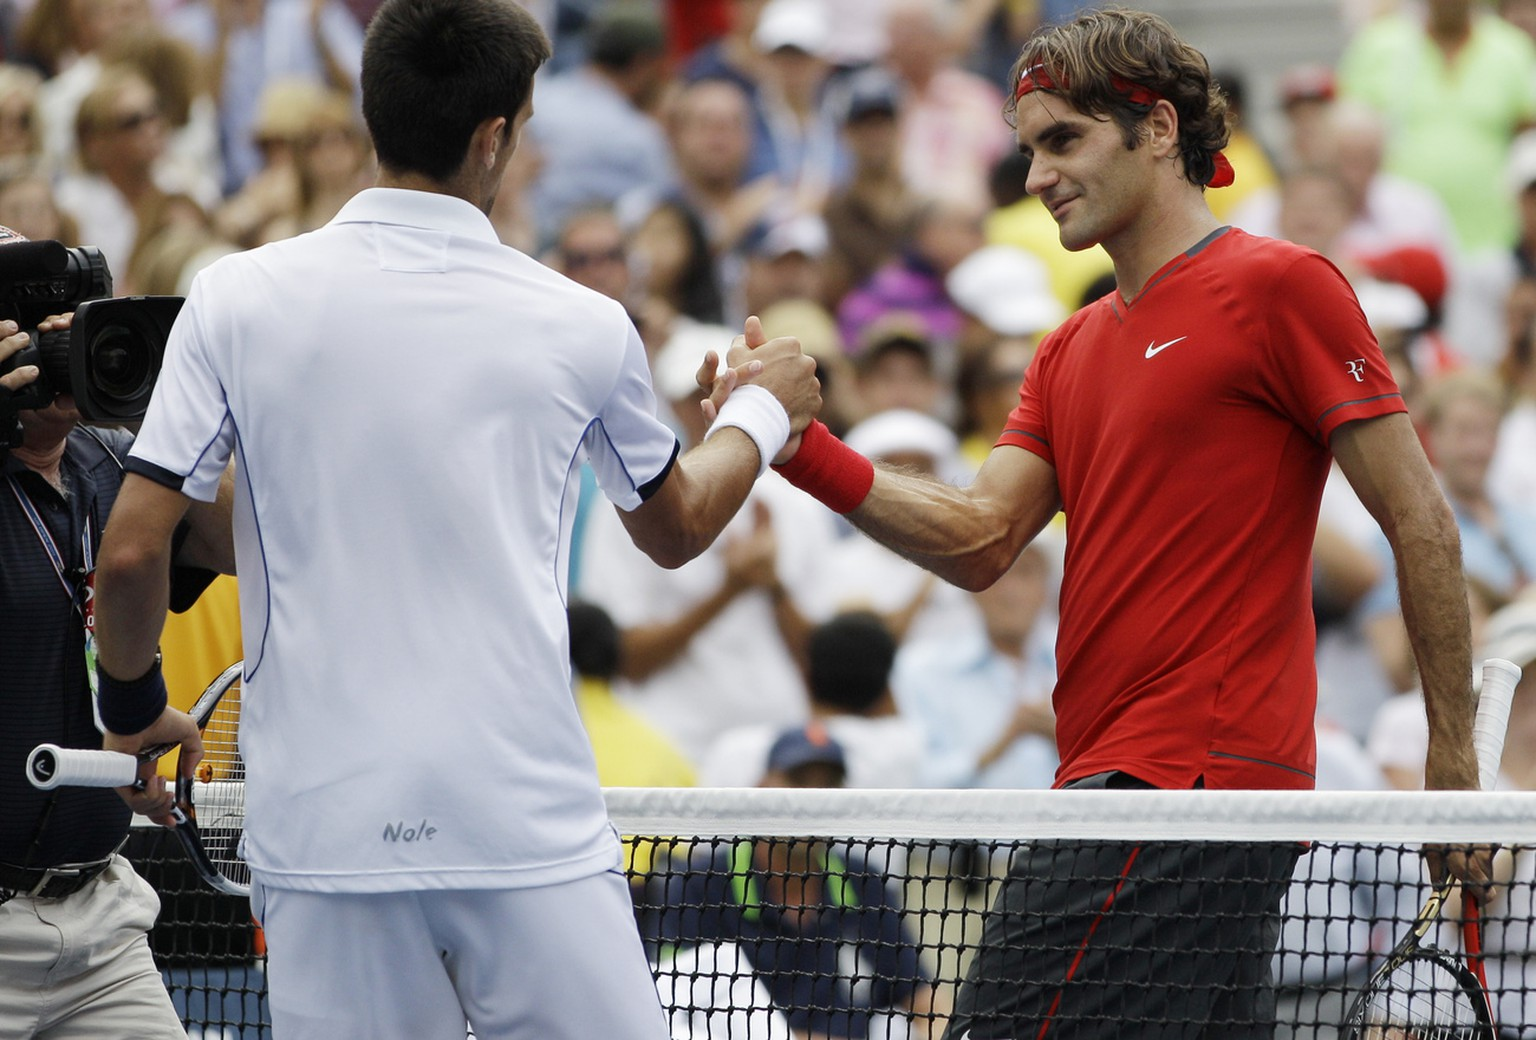 Roger Federer of Switzerland, right, shakes hands with Novak Djokovic of Serbia after losing a semifinal match at the U.S. Open tennis tournament in New York, Saturday, Sept. 10, 2011. (AP Photo/Matt Slocum)